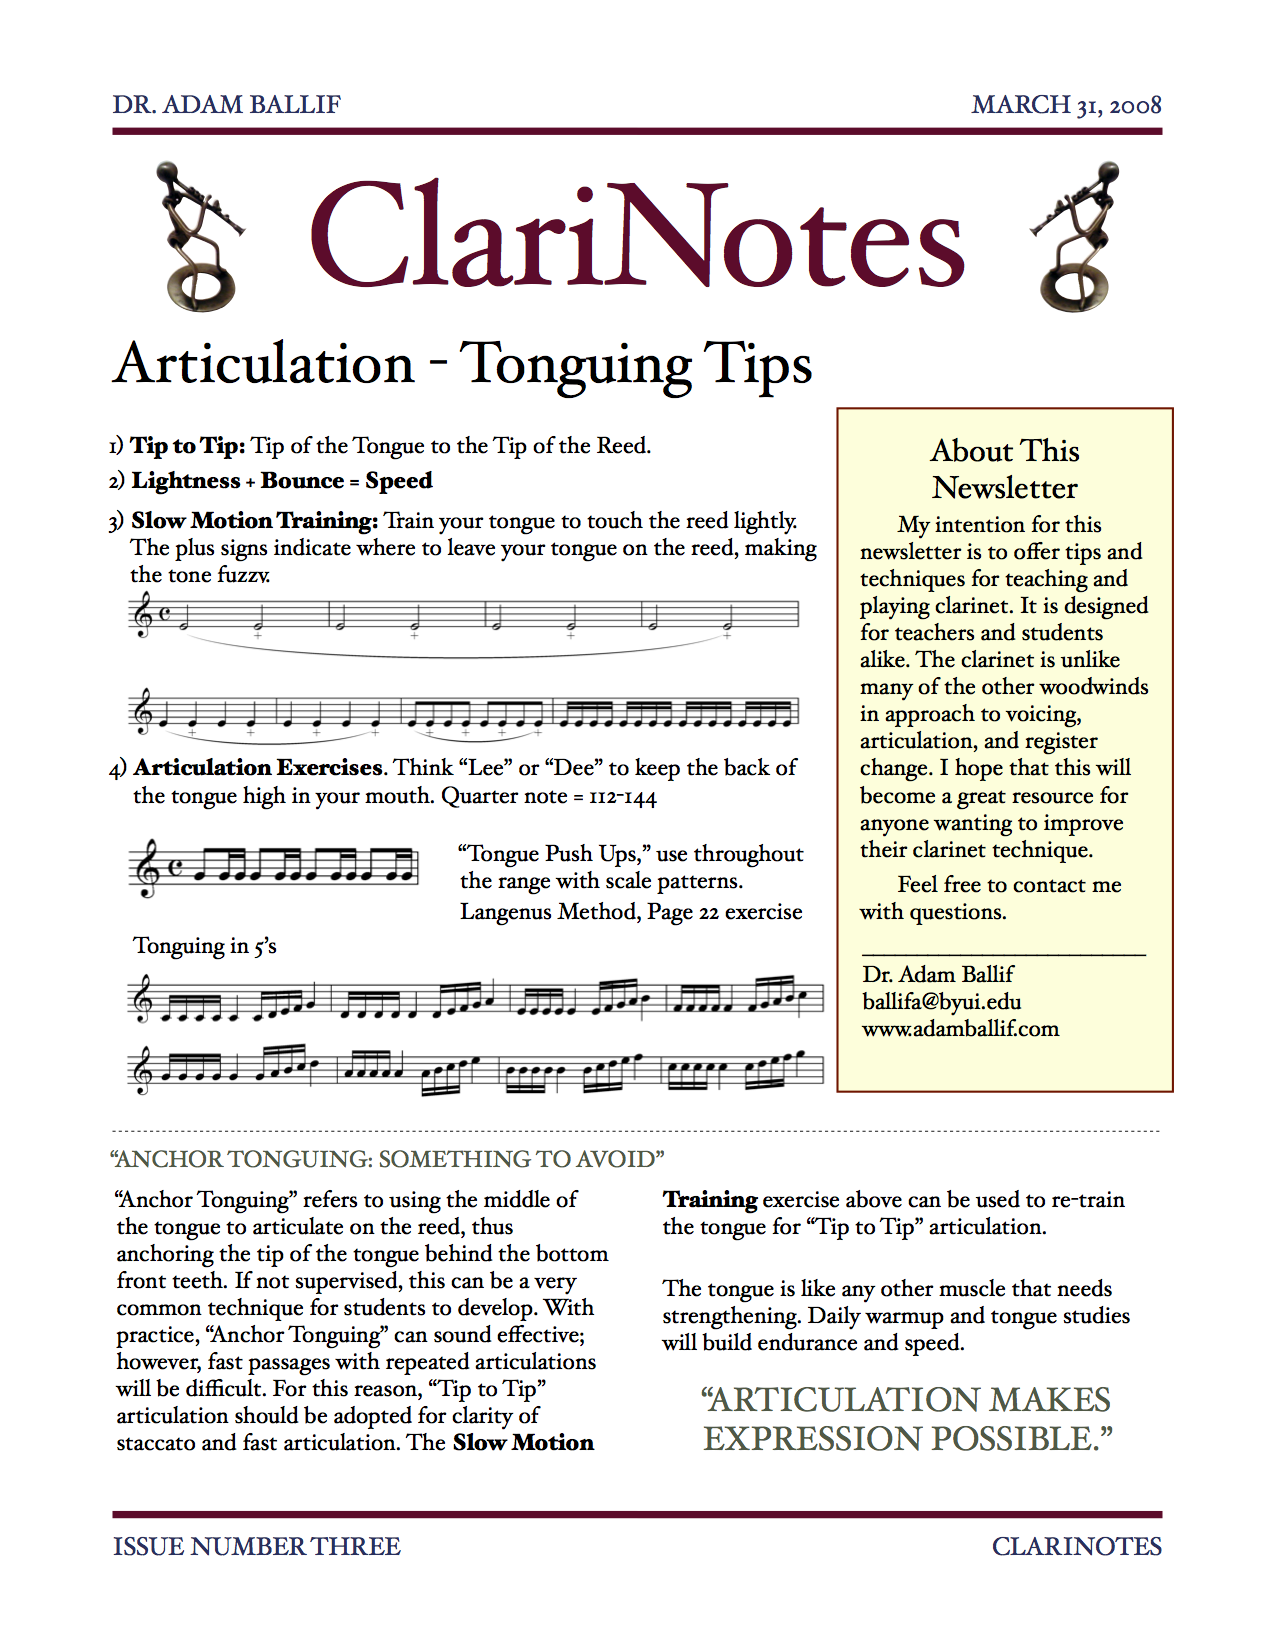 Issue Three - Articulation Tips